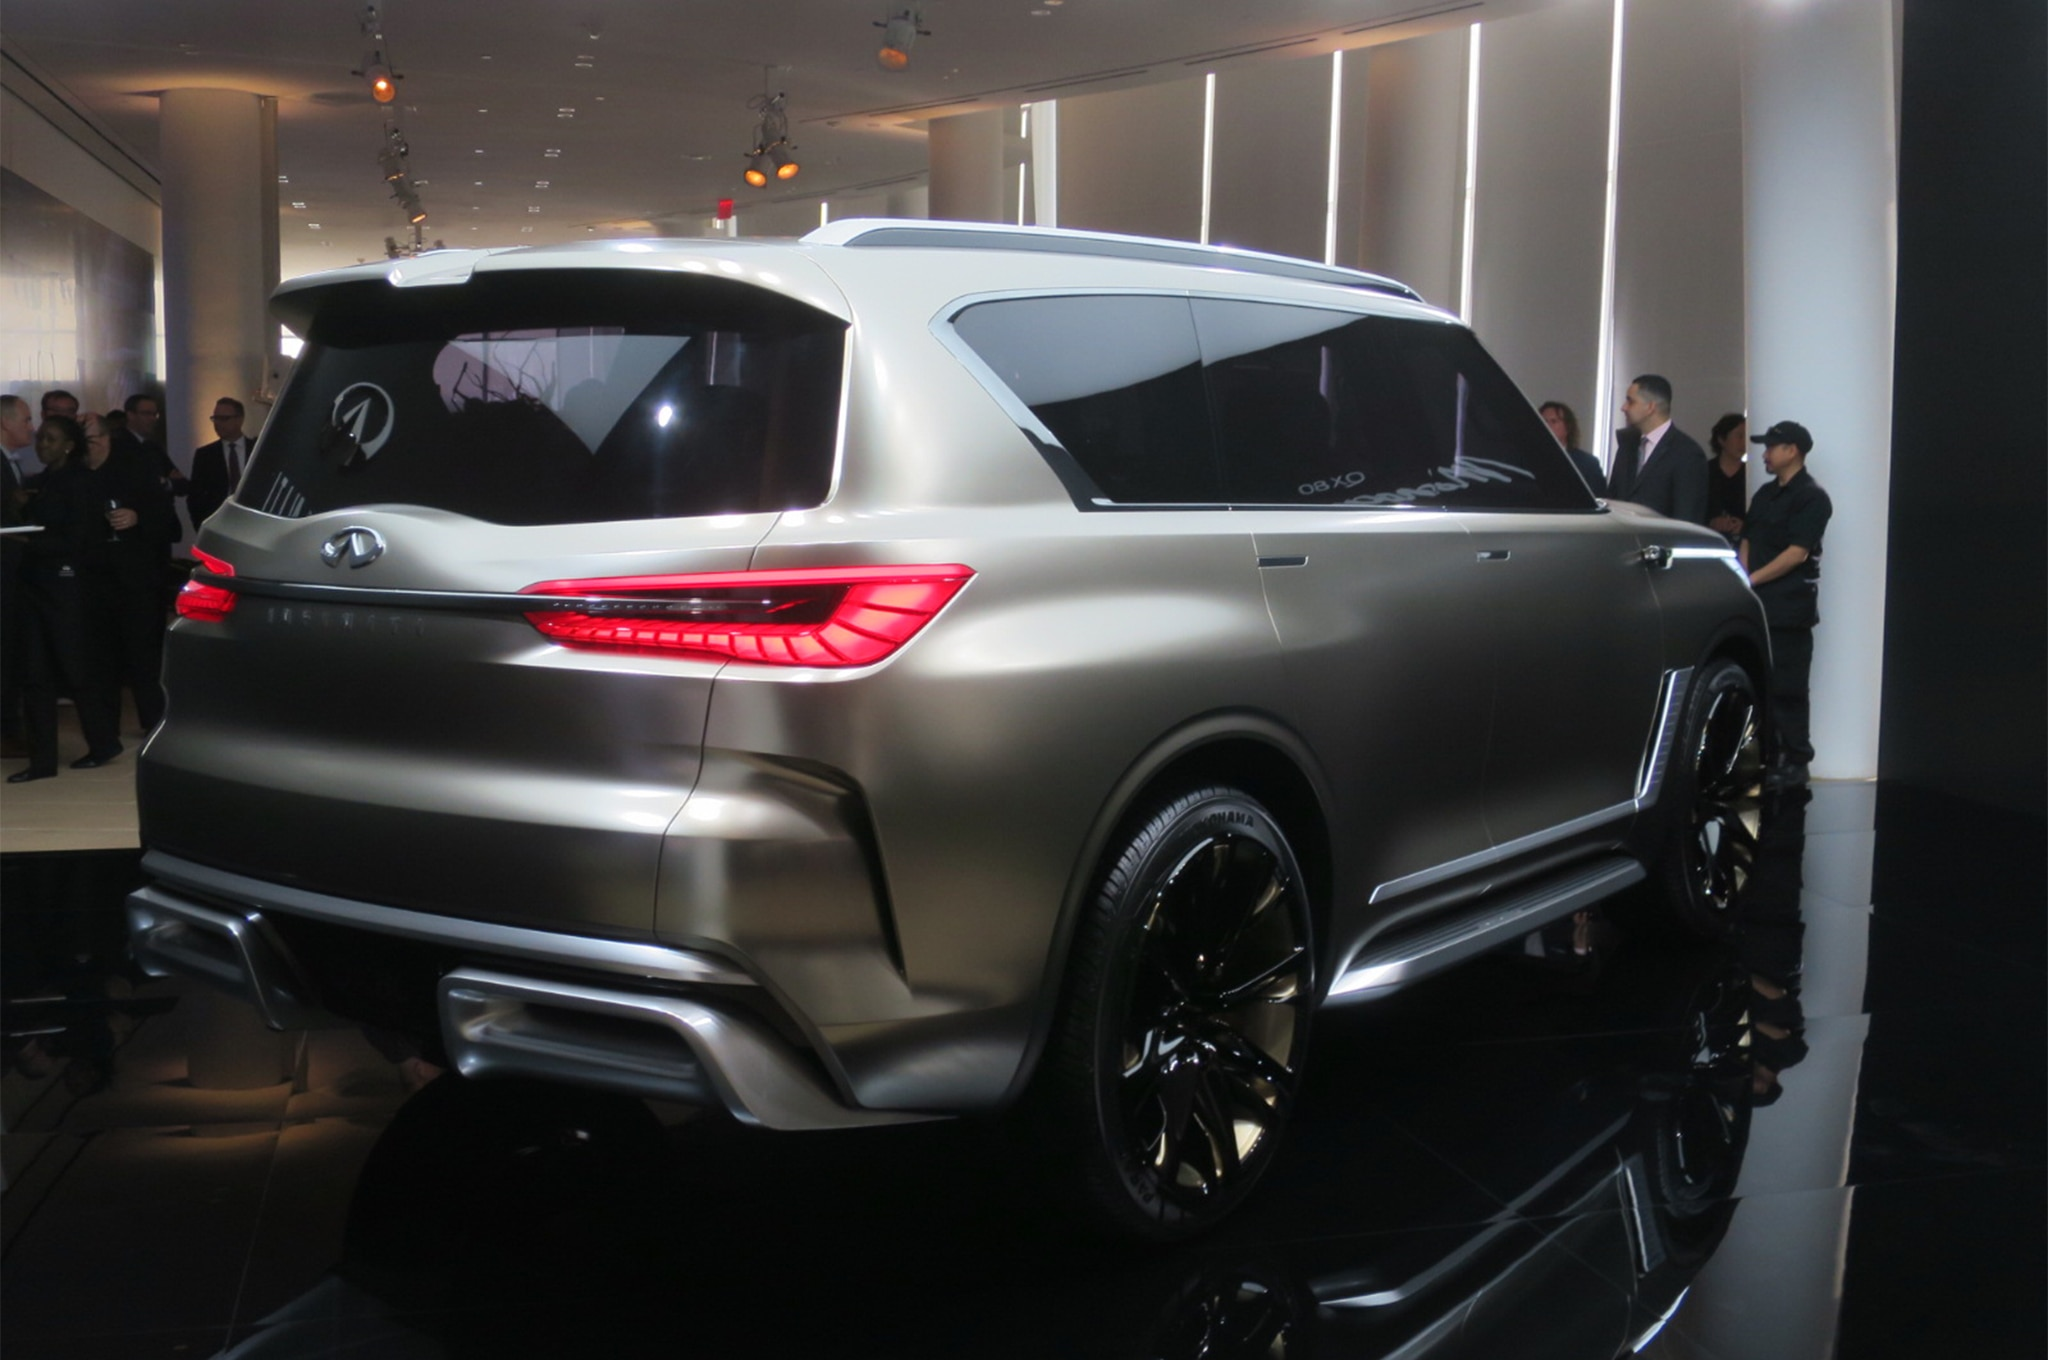 The 2019 Infiniti QX60 and QX80 unveiled during New York Auto Show